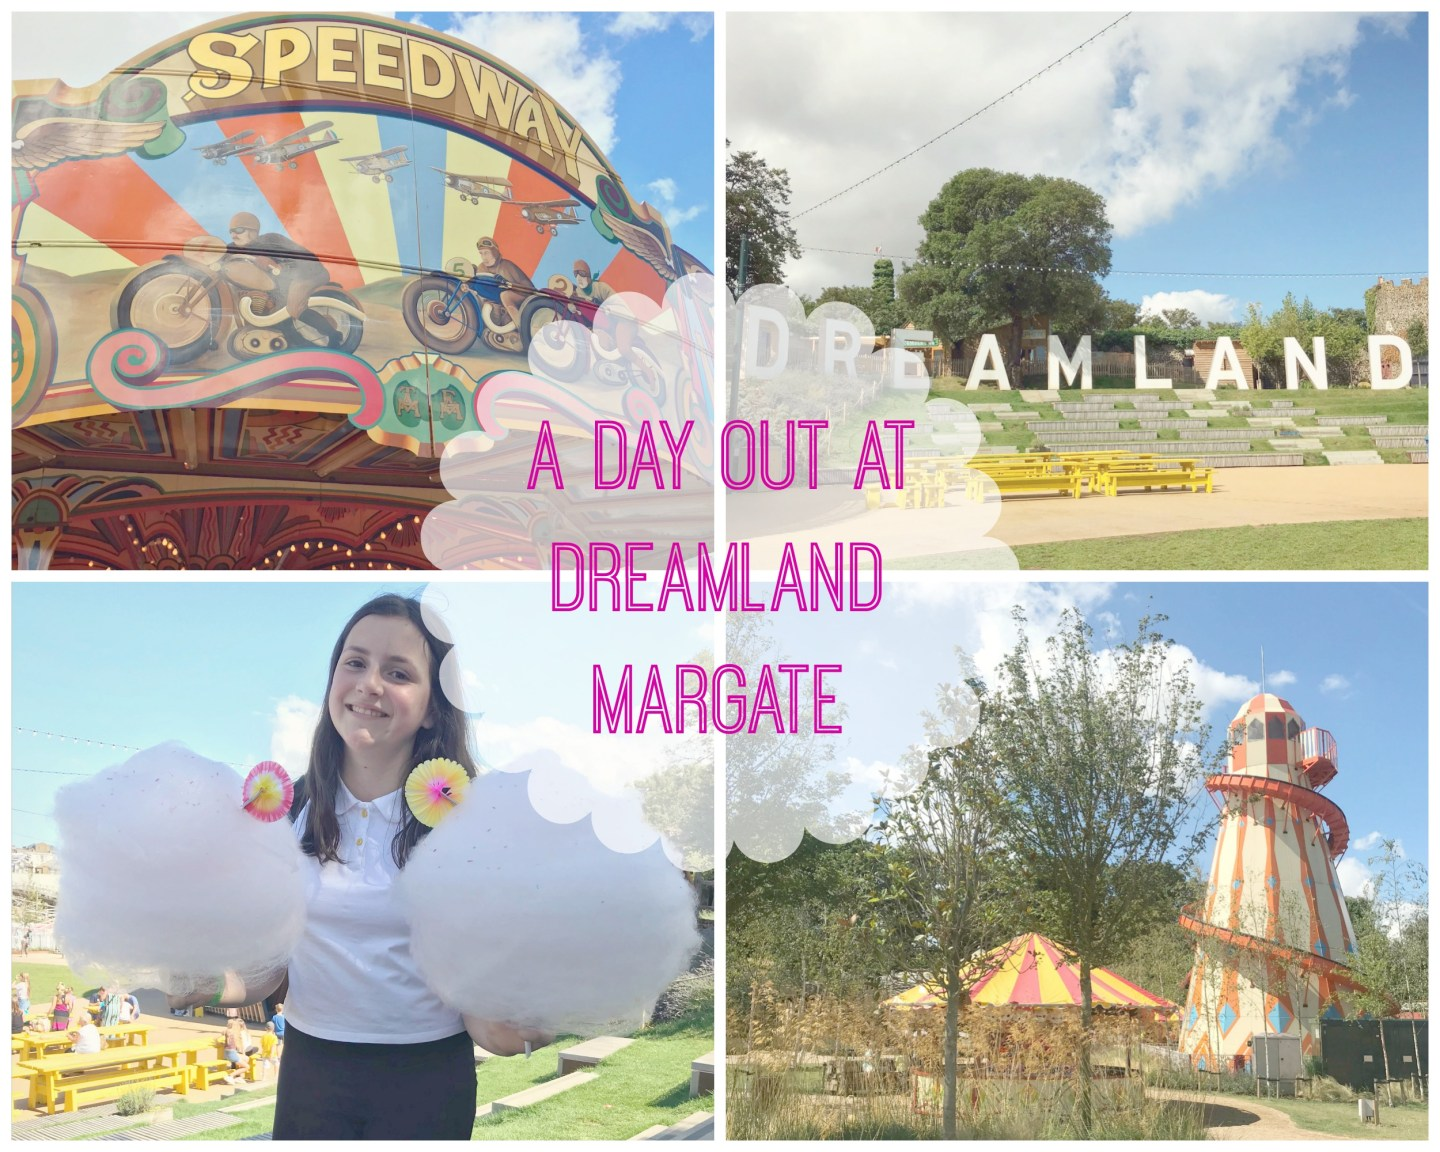 A Day Out at Dreamland